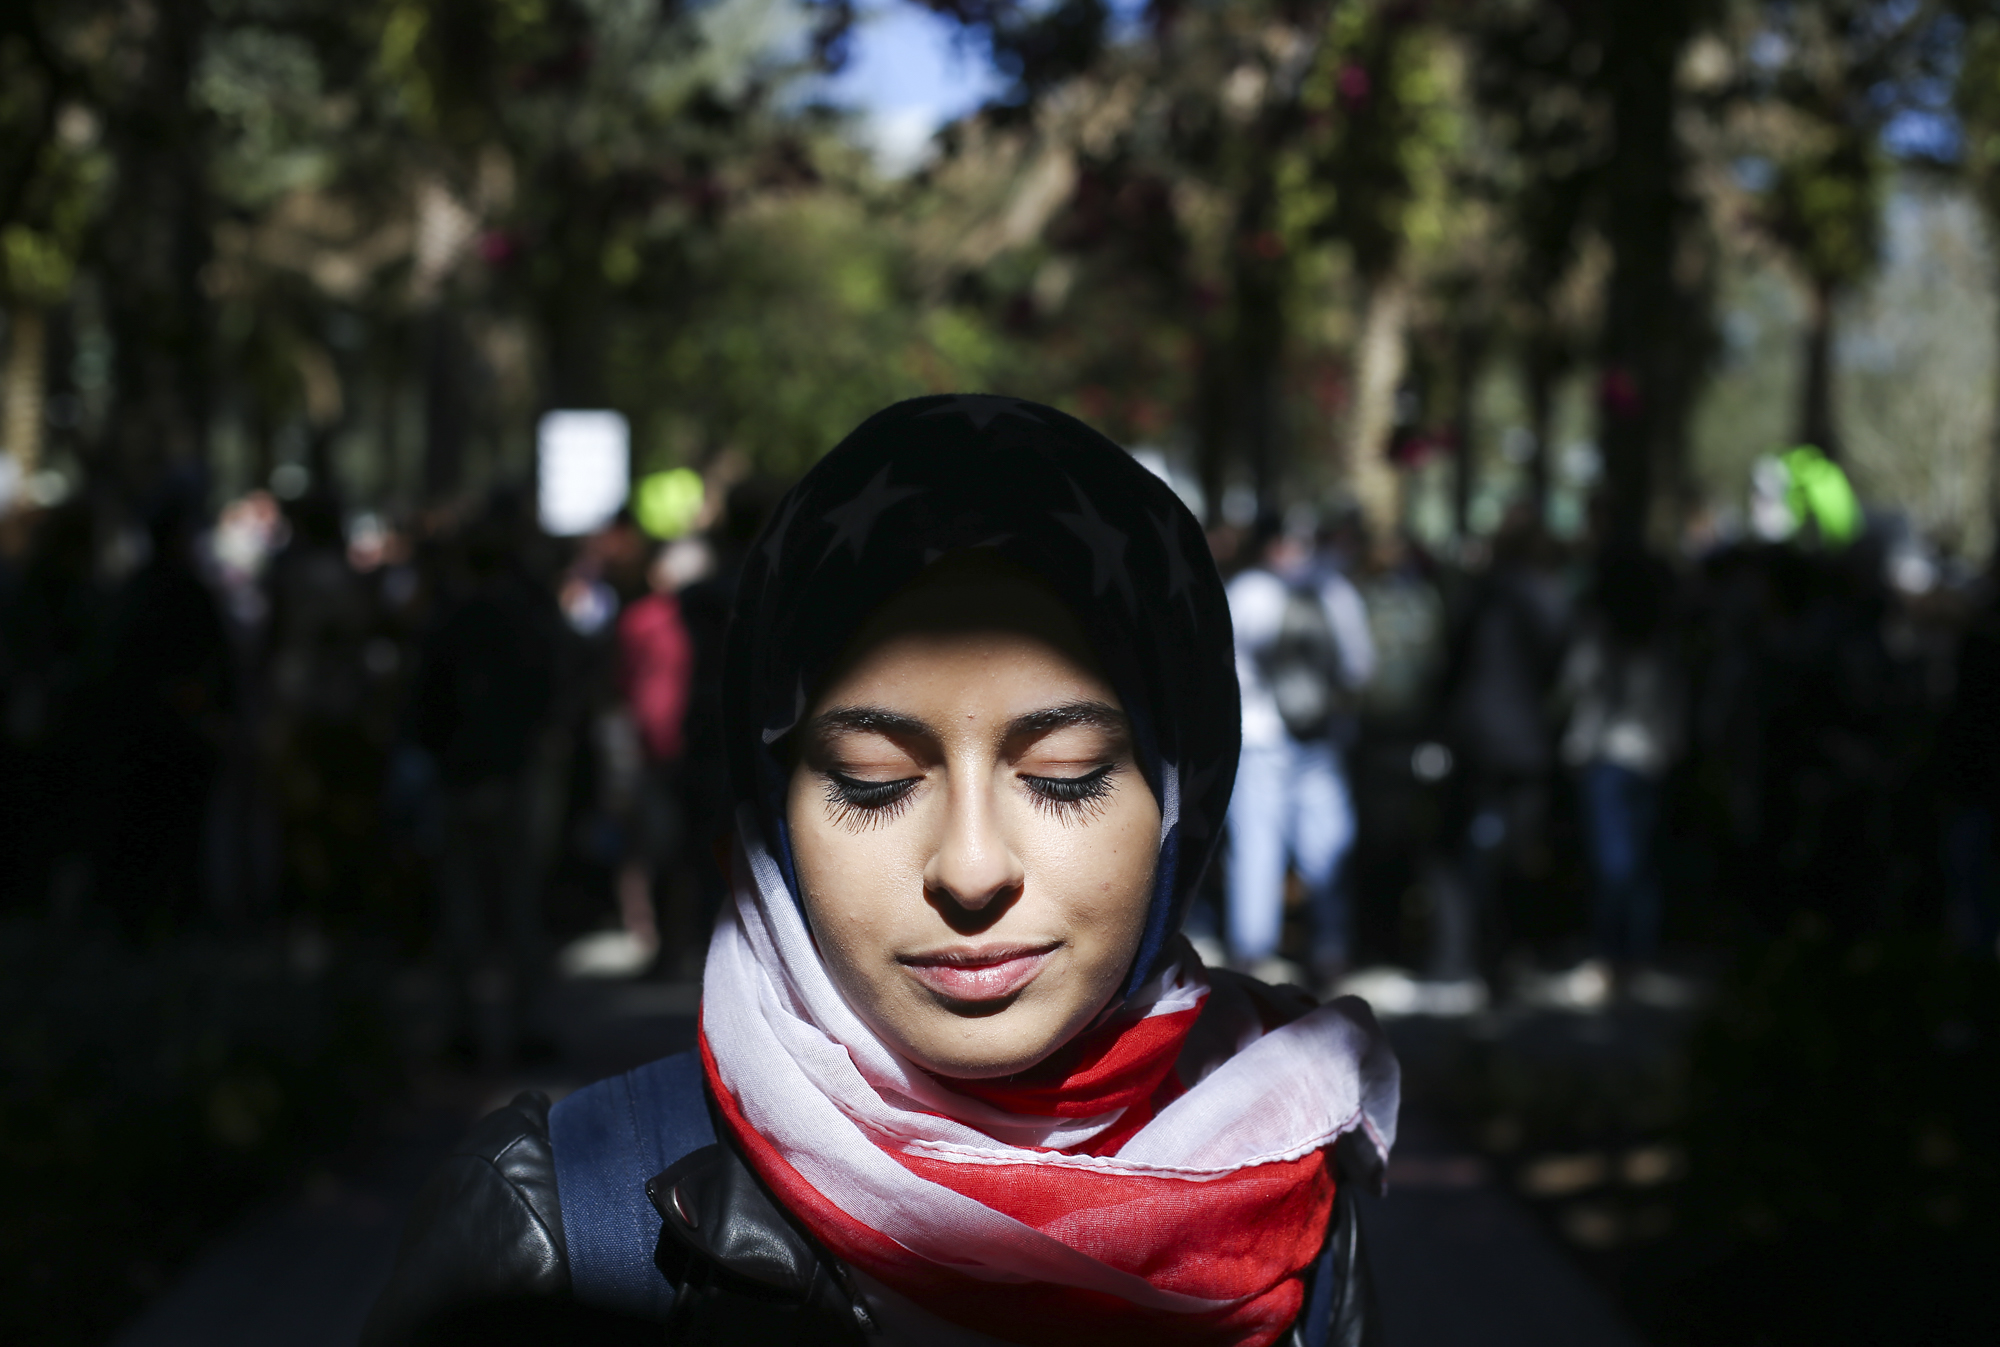 """Sarah Eldin, 19, poses for a portrait at the University of Southern Florida in Tampa, Fla., Monday, January 30, 2017. """"Everyday we're a symbol of what's at hand right now,"""" she said."""